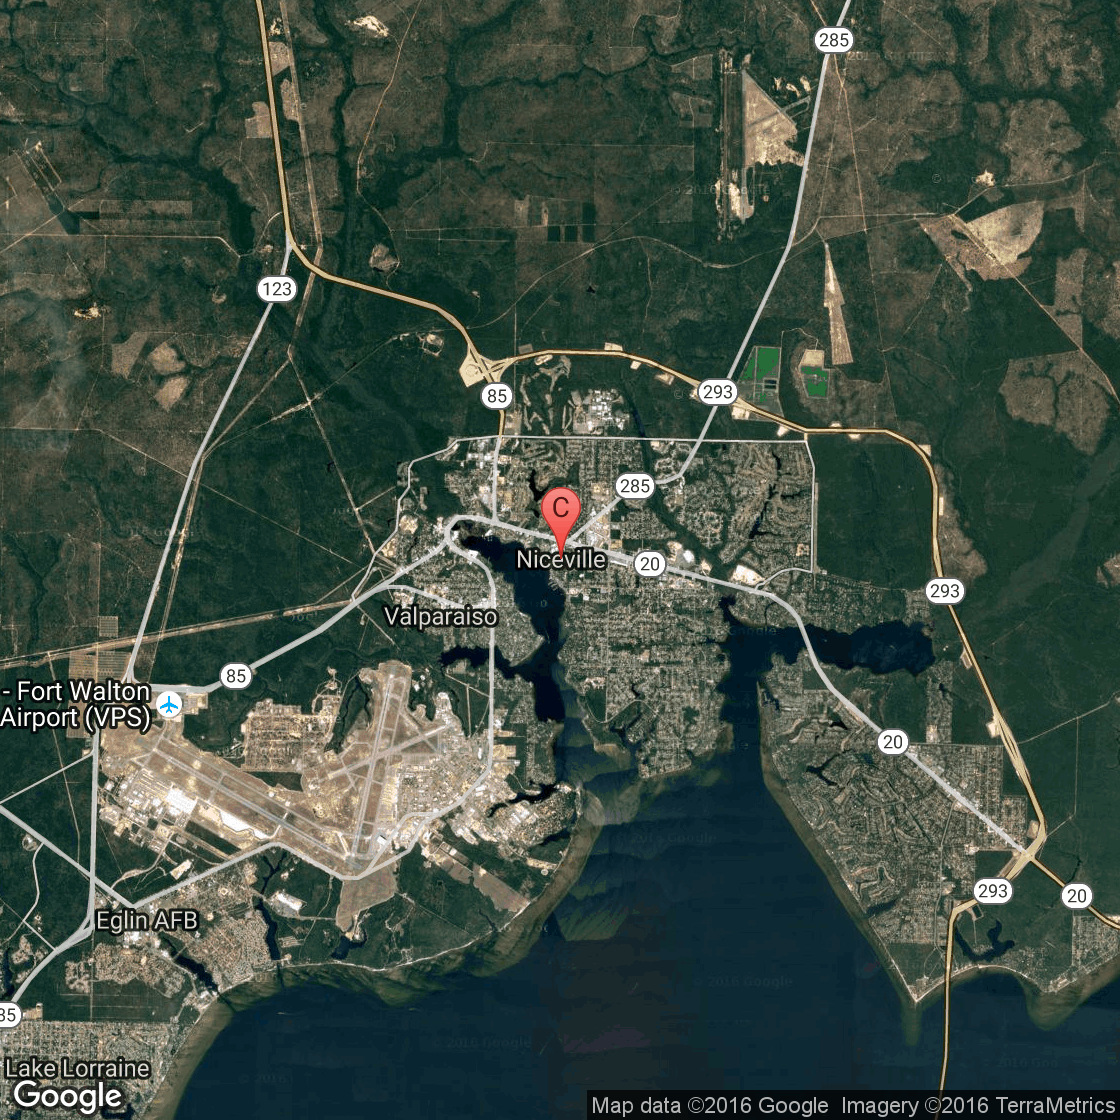 Things To See In Niceville Florida USA Today - Florida map niceville